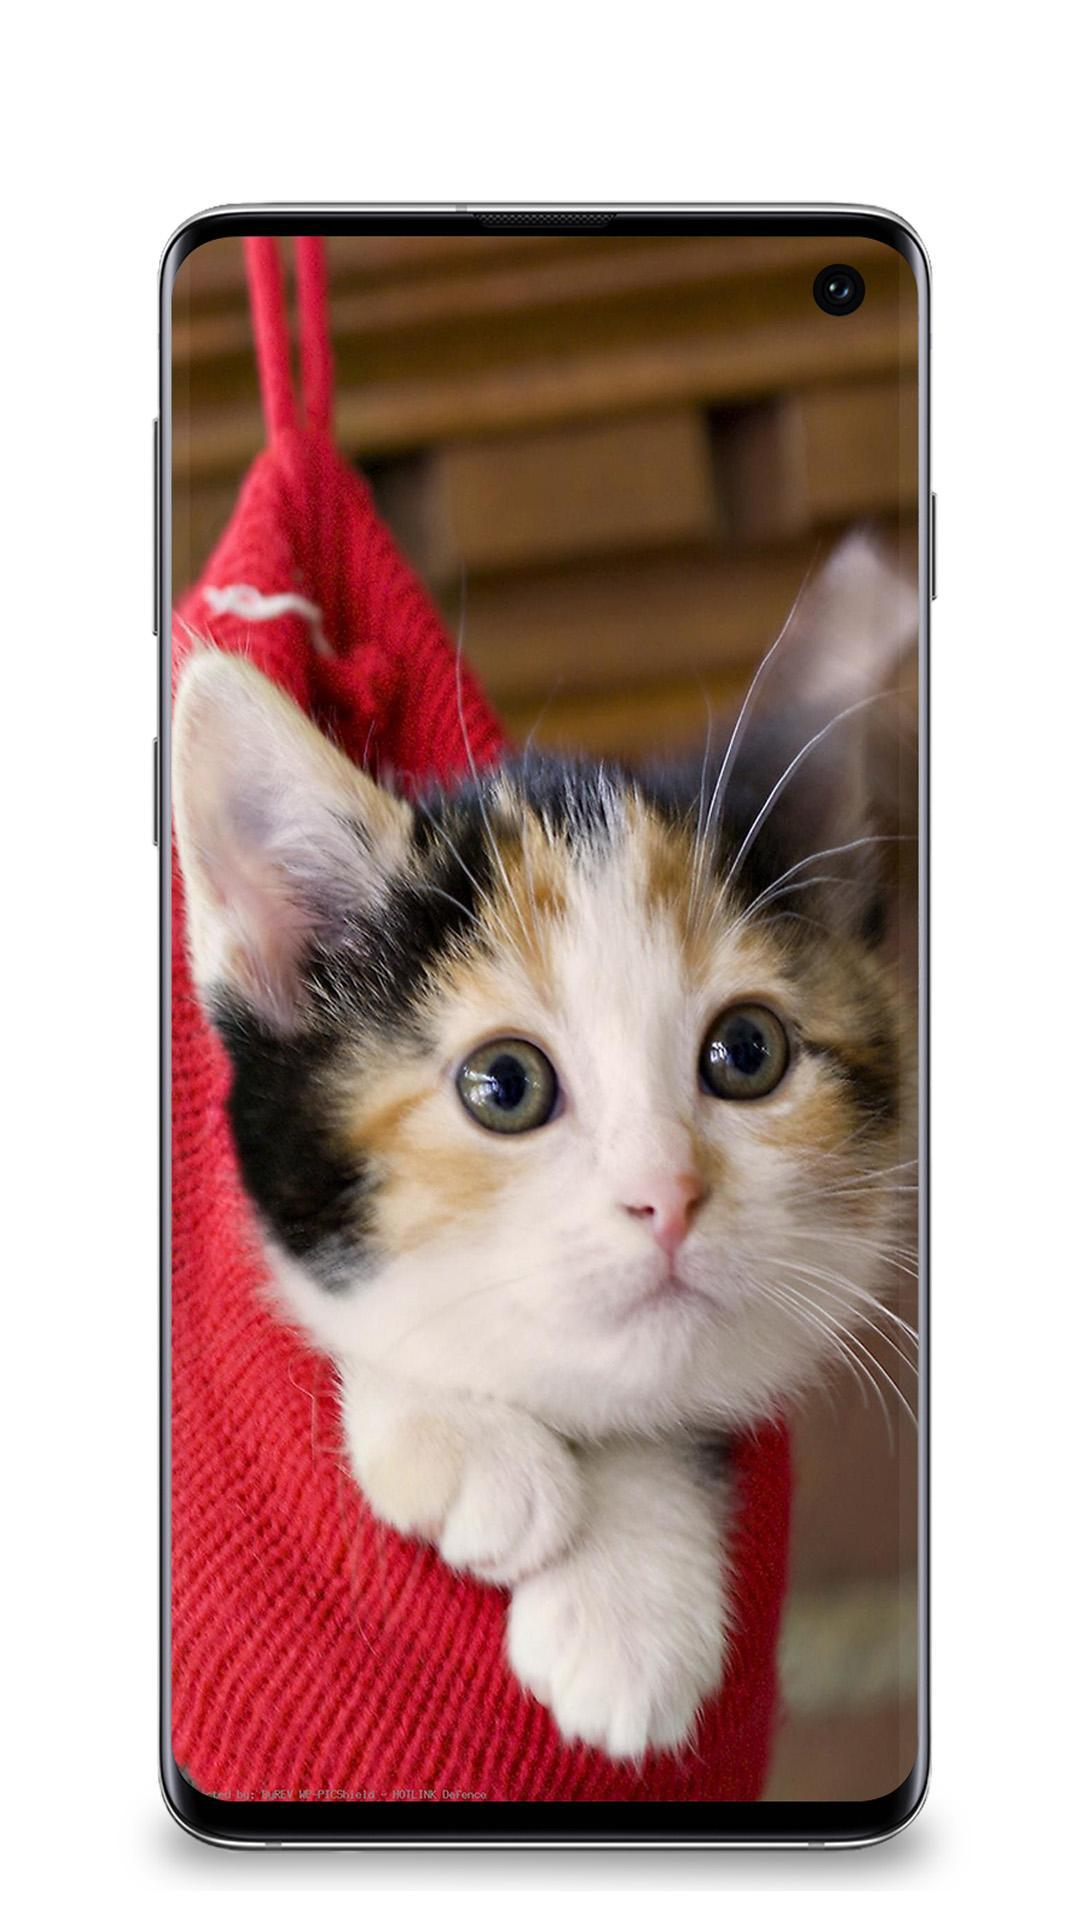 Cute Cat Wallpapers Hd For Android Apk Download